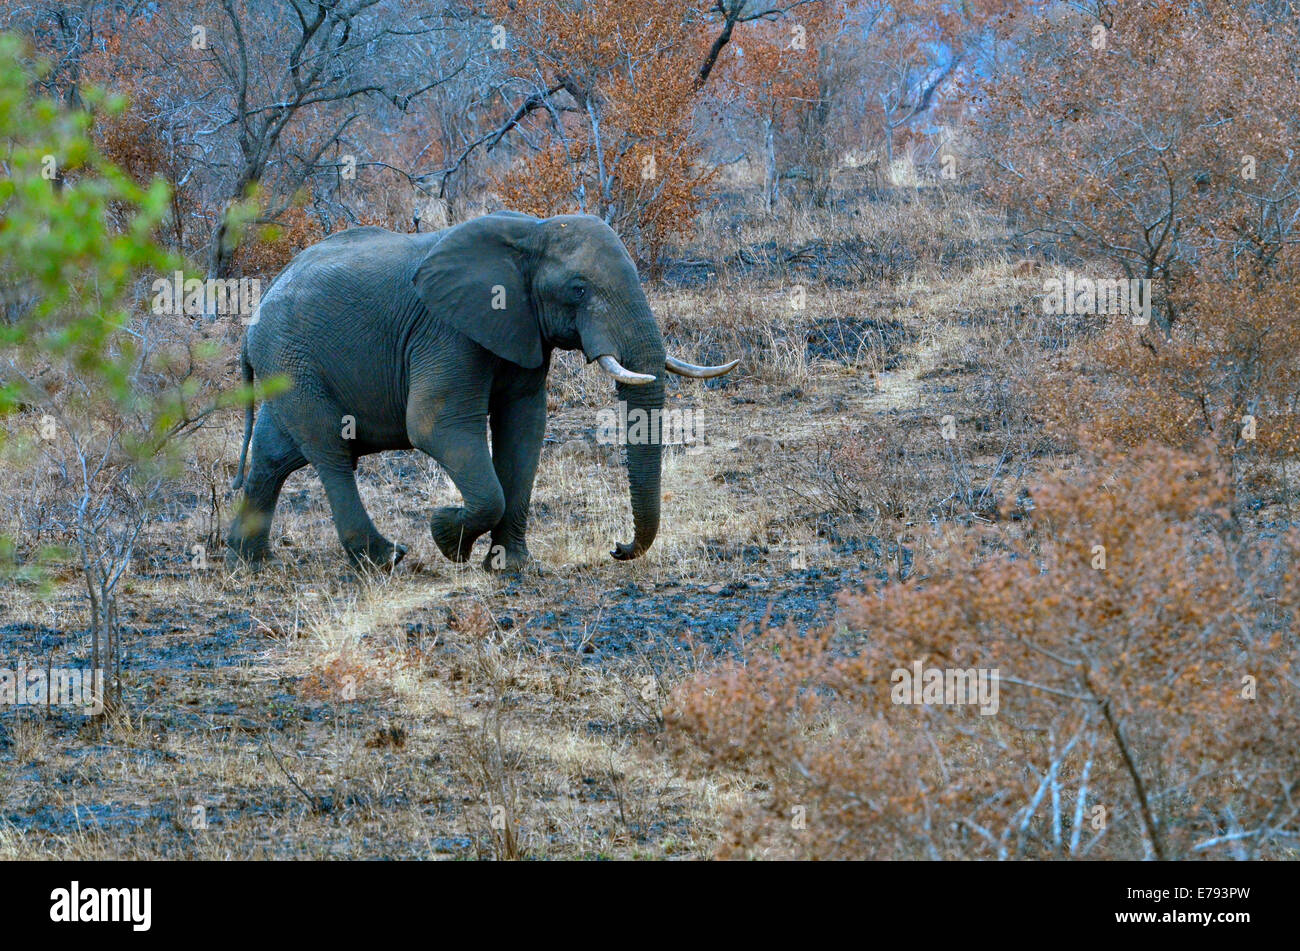 African elephant walking across game path in burnt savannah with green leaves on tree. Kruger National Park, South - Stock Image